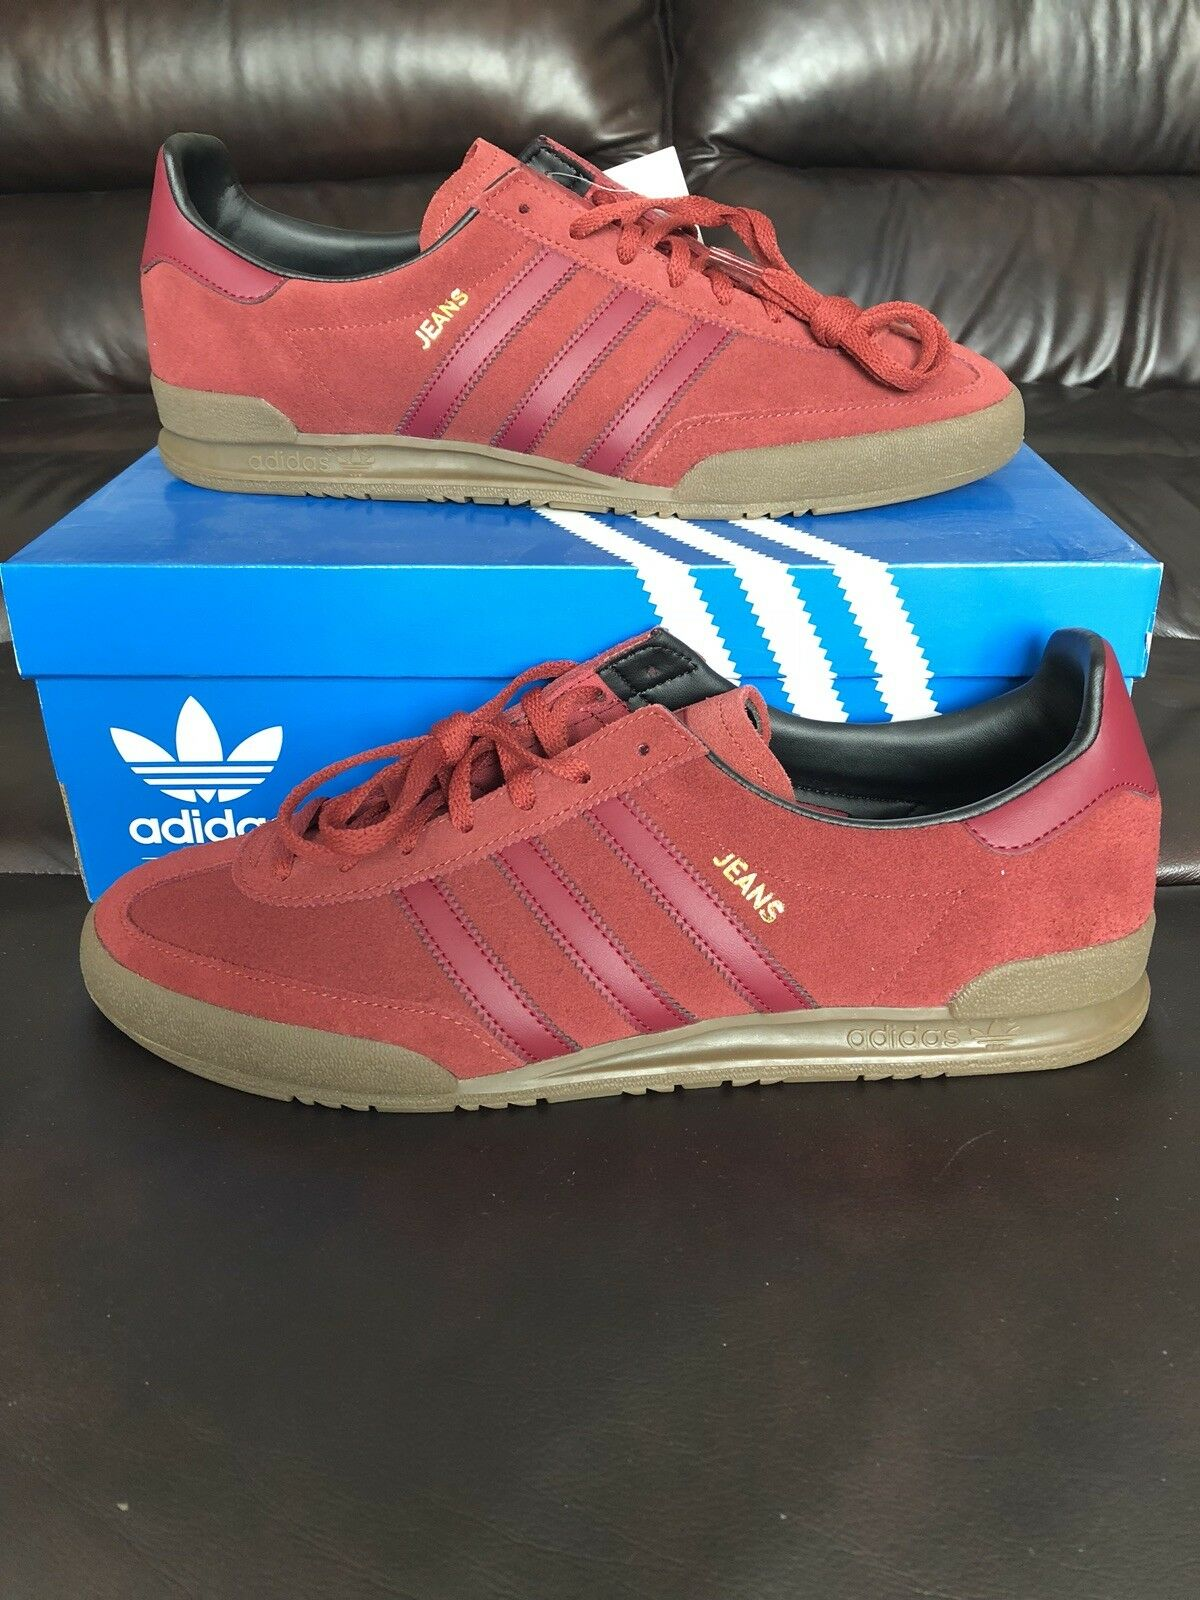 Adidas Jeans12  (New With Box)